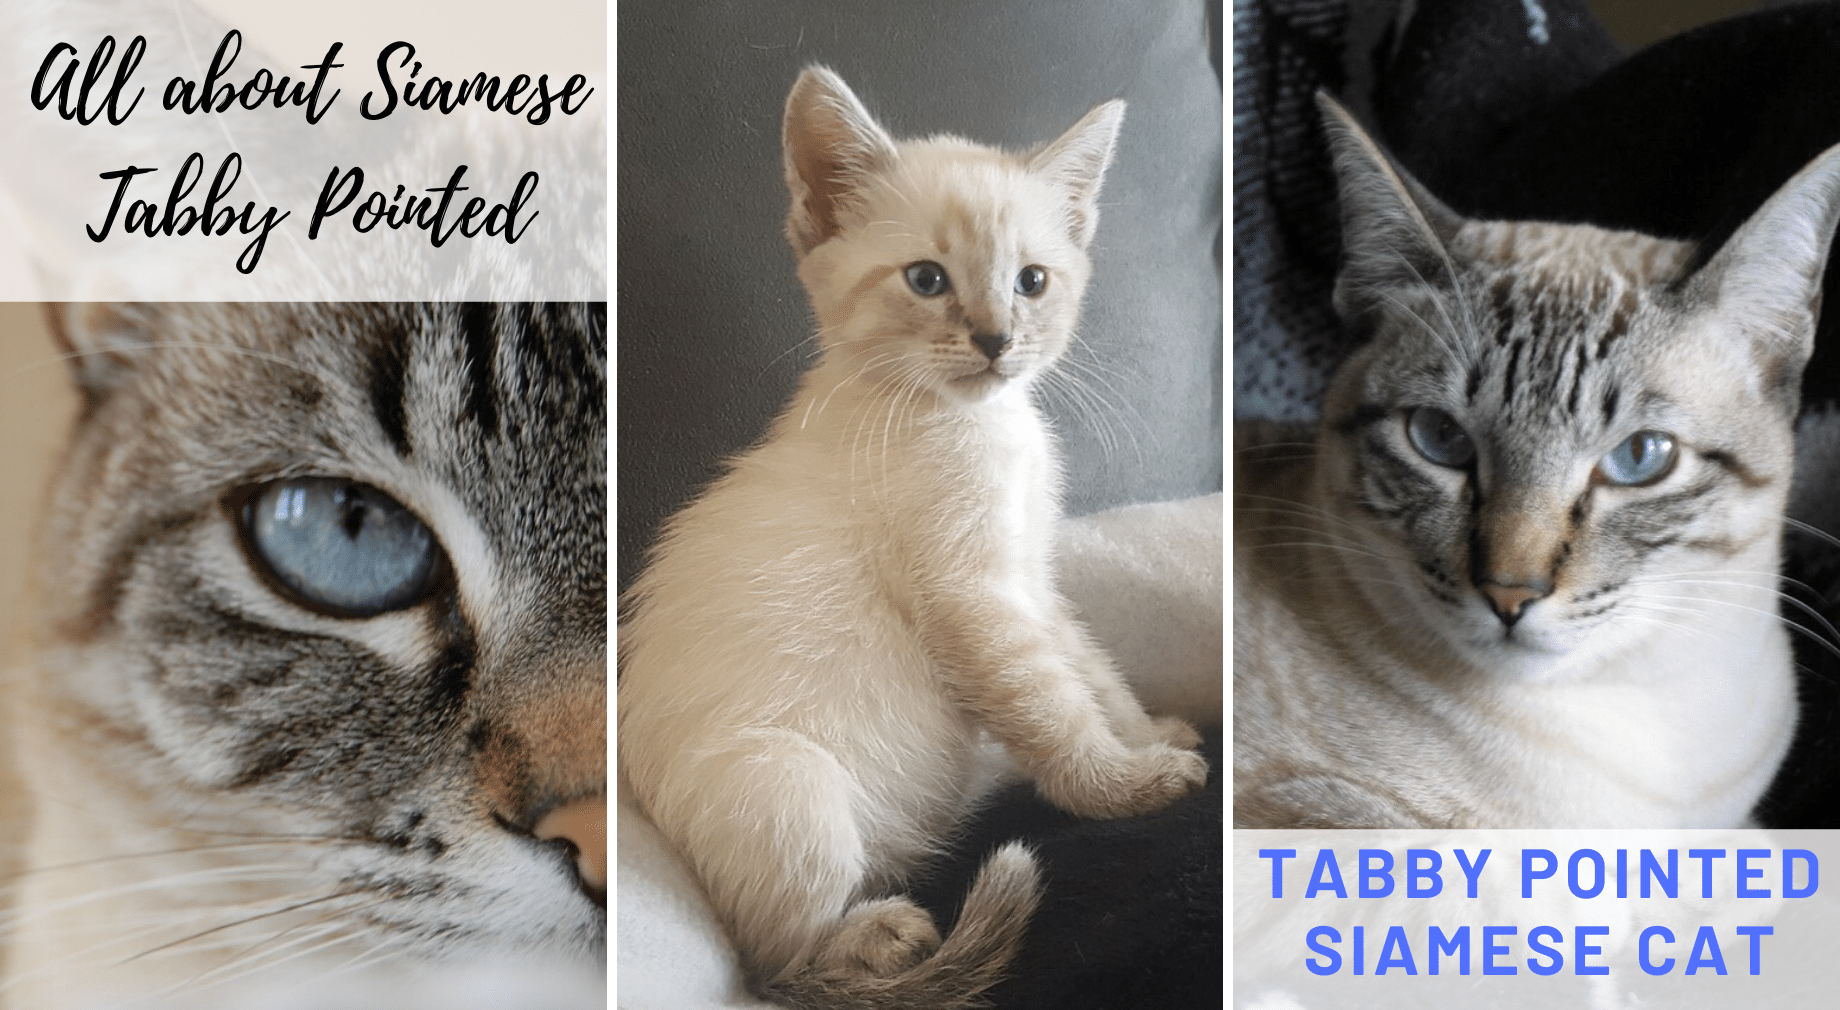 Tabby Pointed Siamese Cat